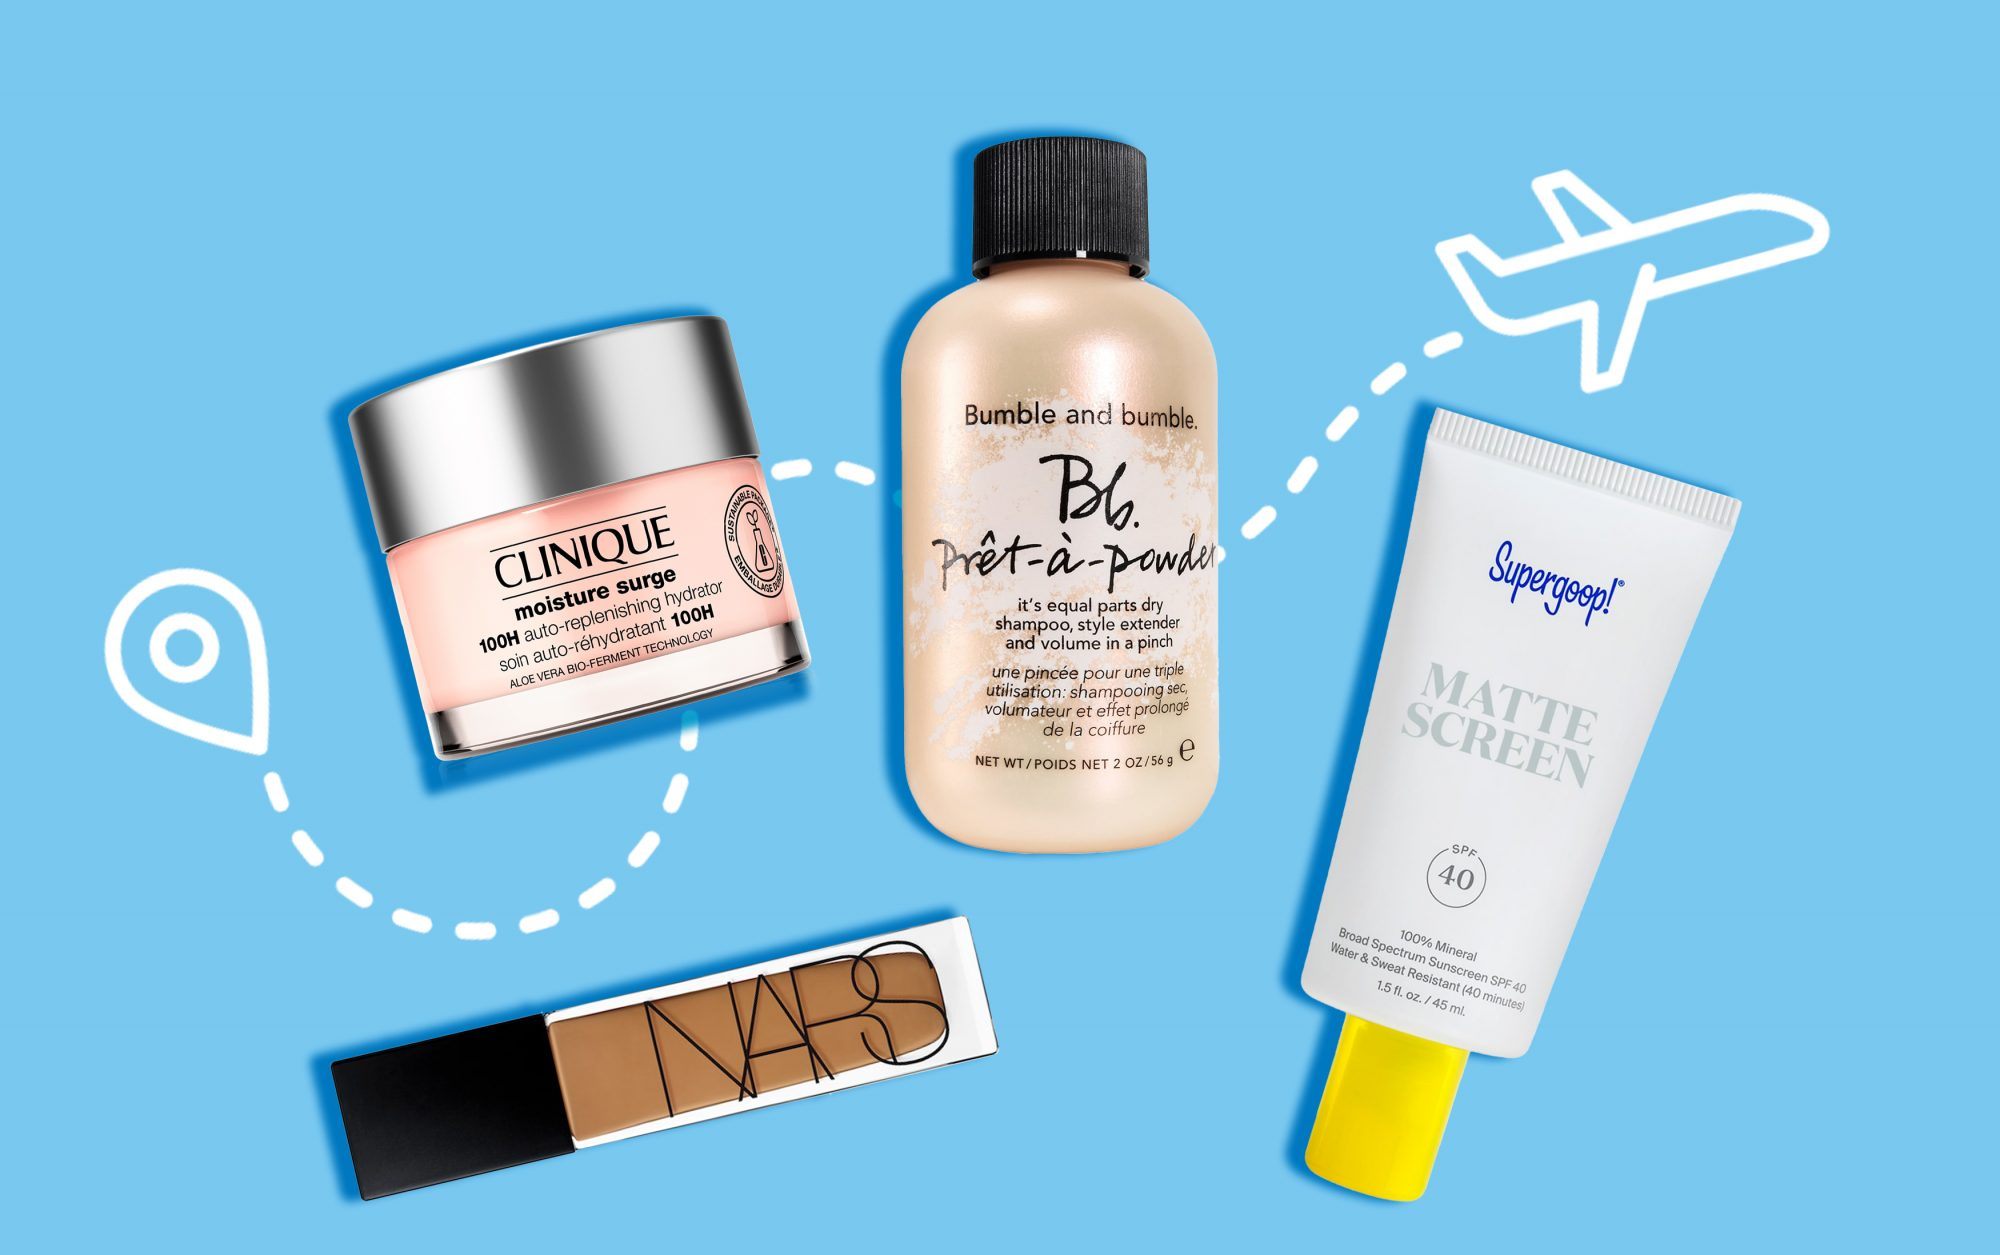 tsa approved beauty products on blue background